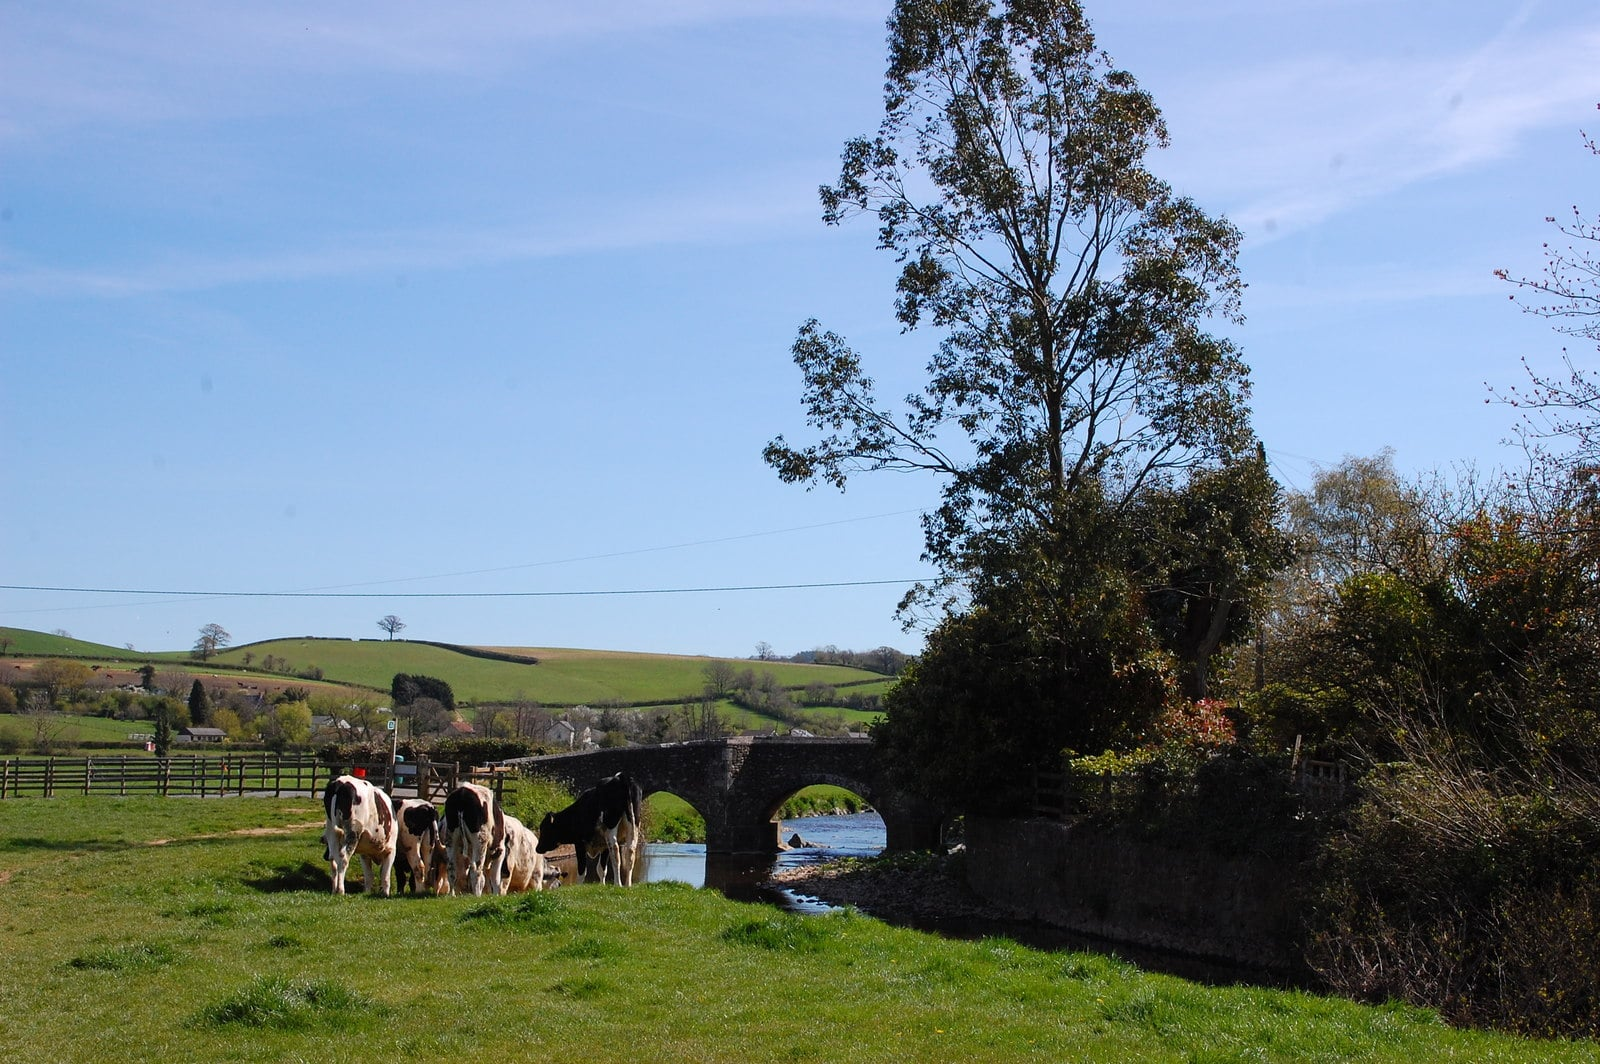 Photo of fields alongside a river with cows and a bridge in the background